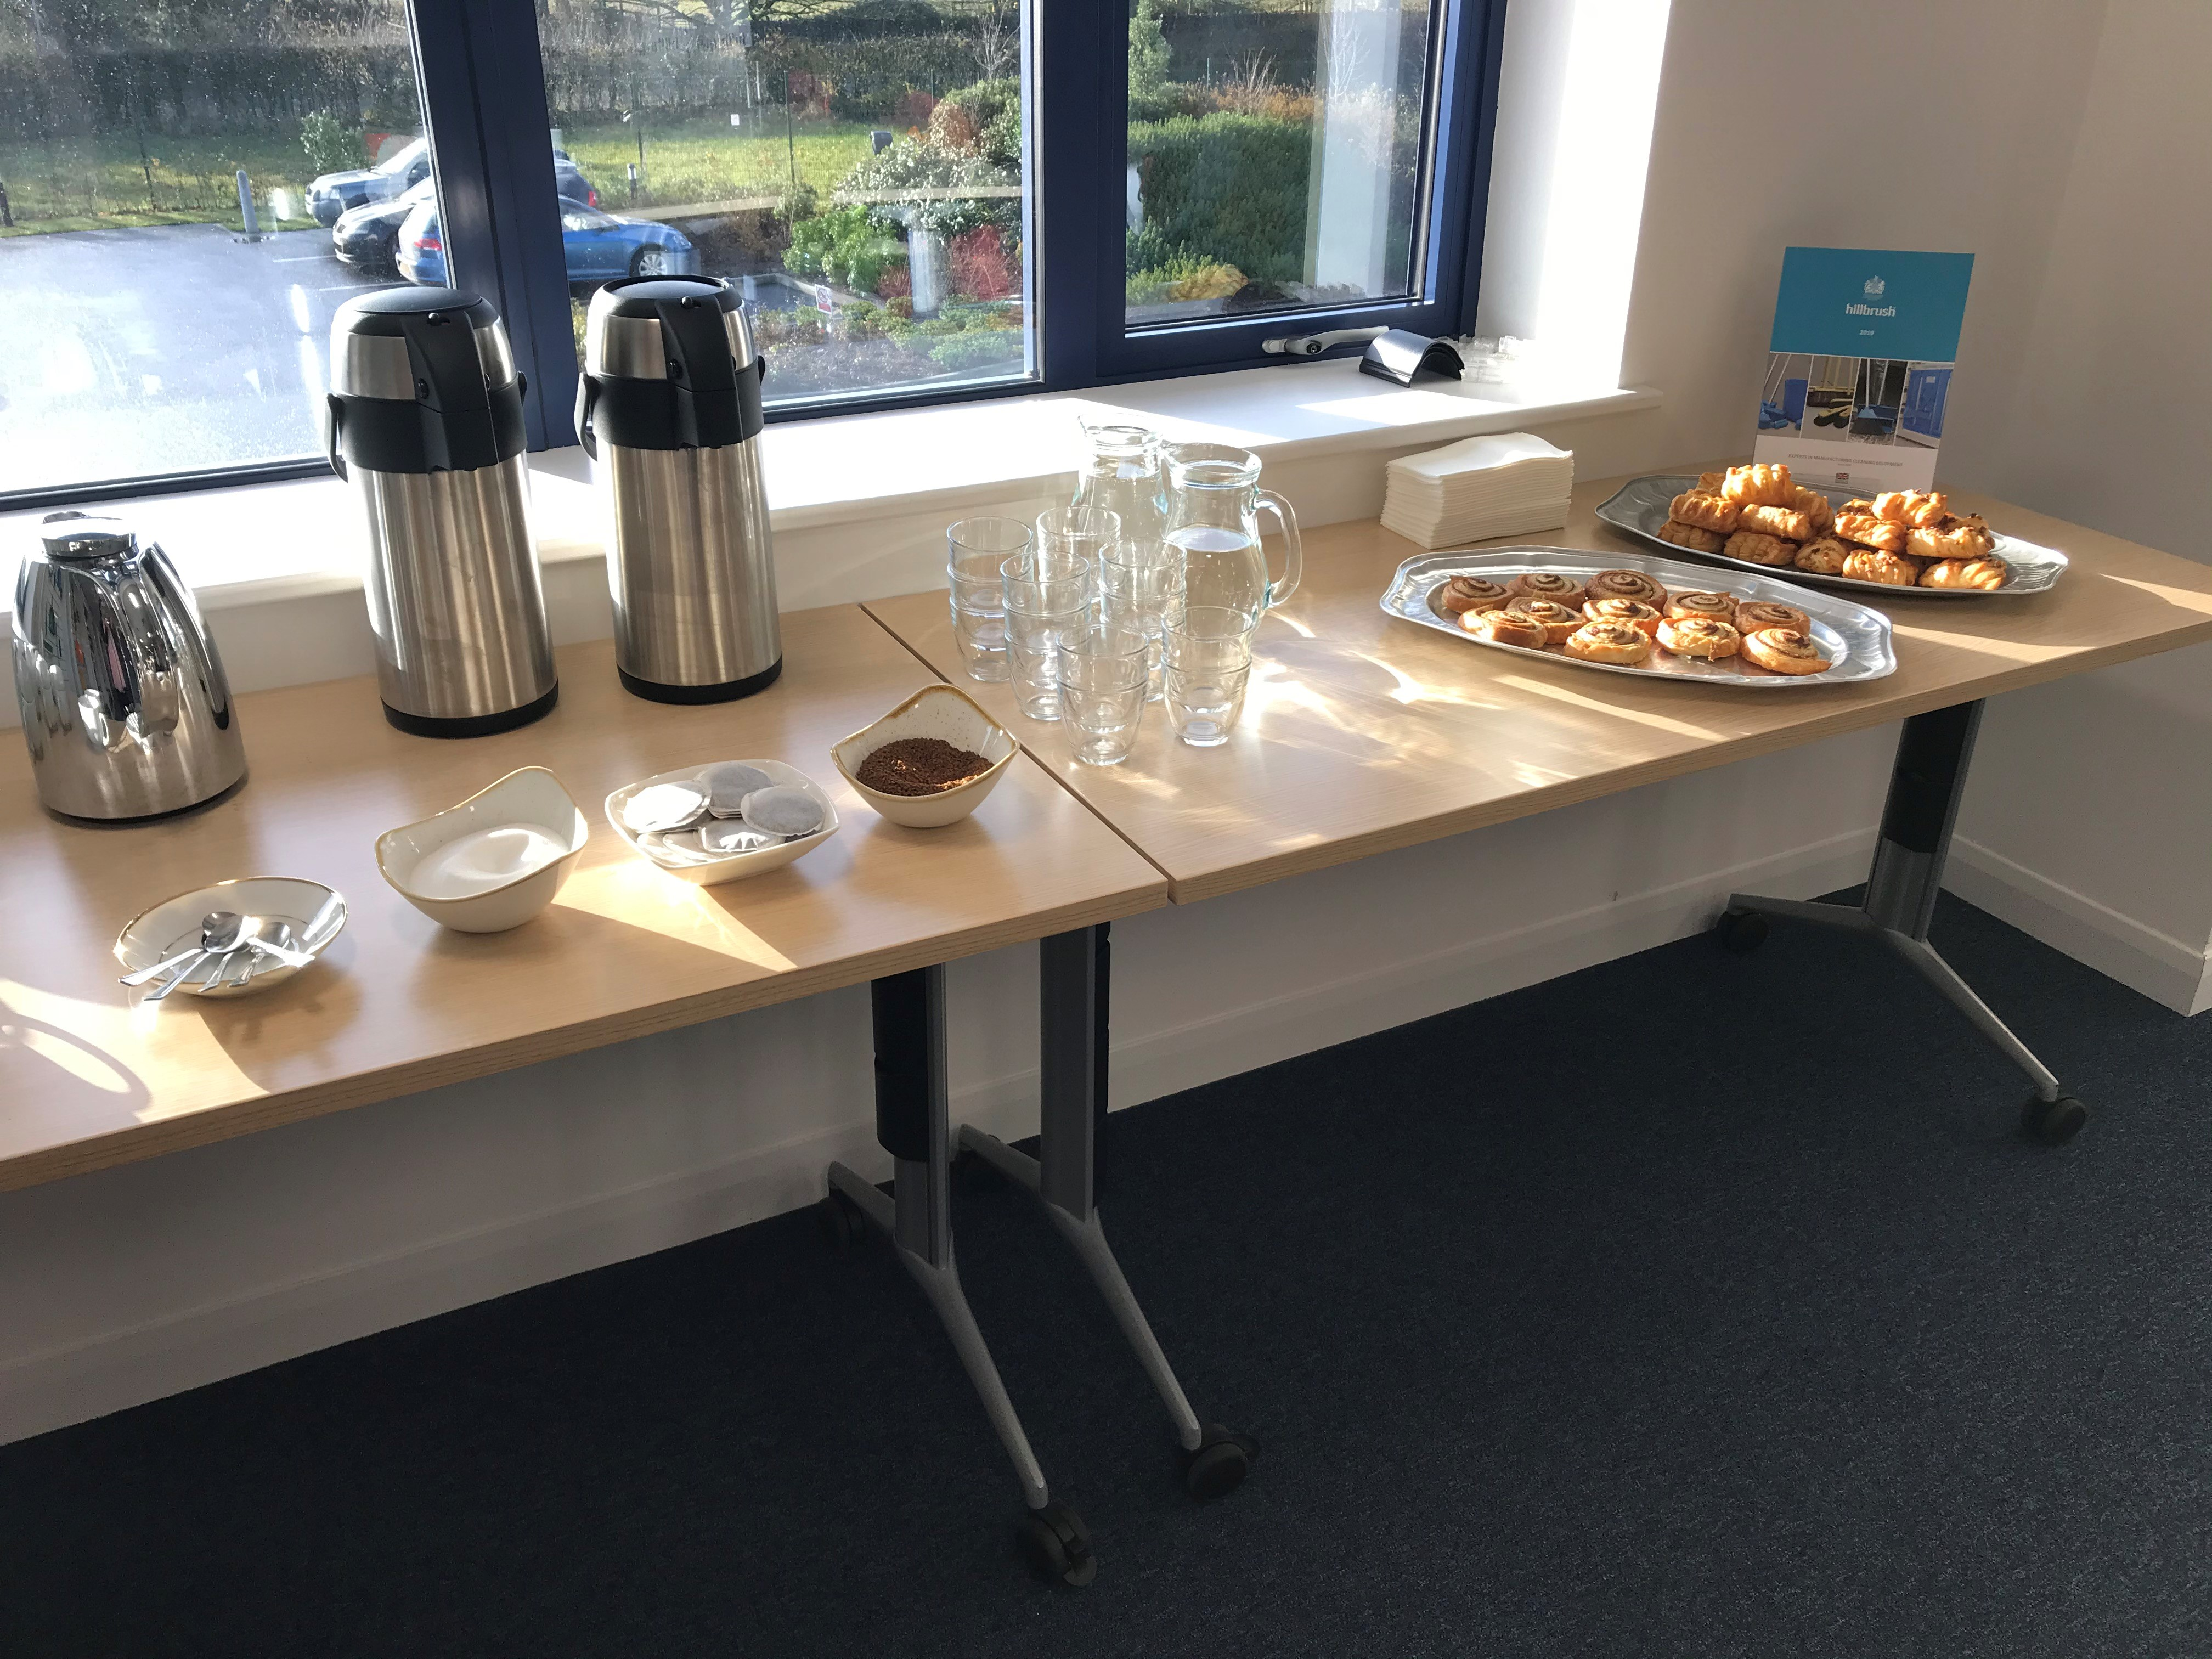 Teas and Coffees provided - Octopus Personnel Recruitment Day at Hillbrush